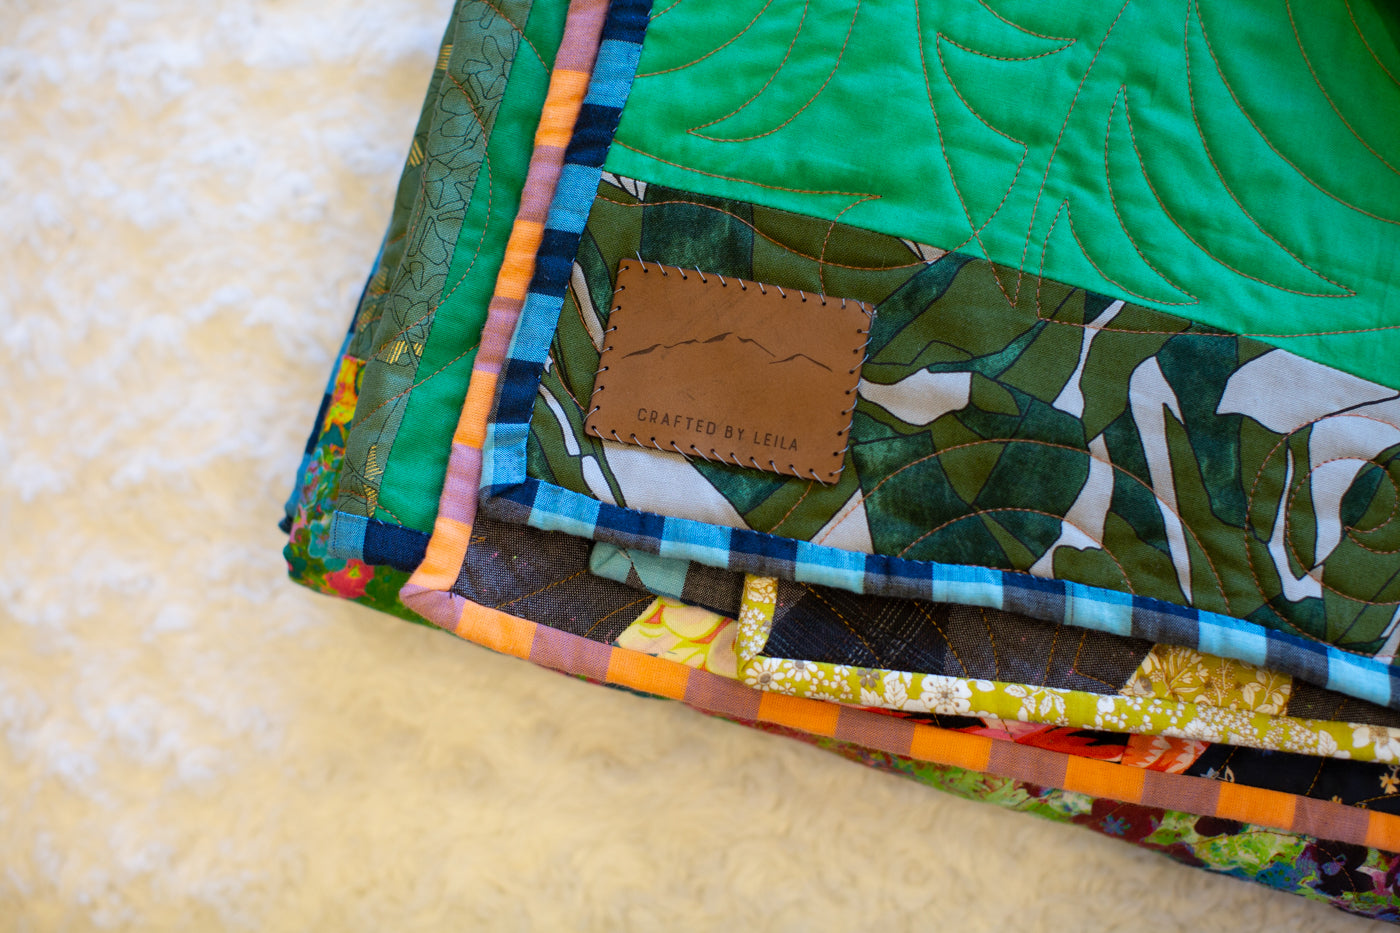 Layflat image of quilt on a white fuzzy background.  It is the corner of the quilt that has a light green patch above and a darker leaf green a pattern below.  The blanket has has a leather patch that says made by Lelia